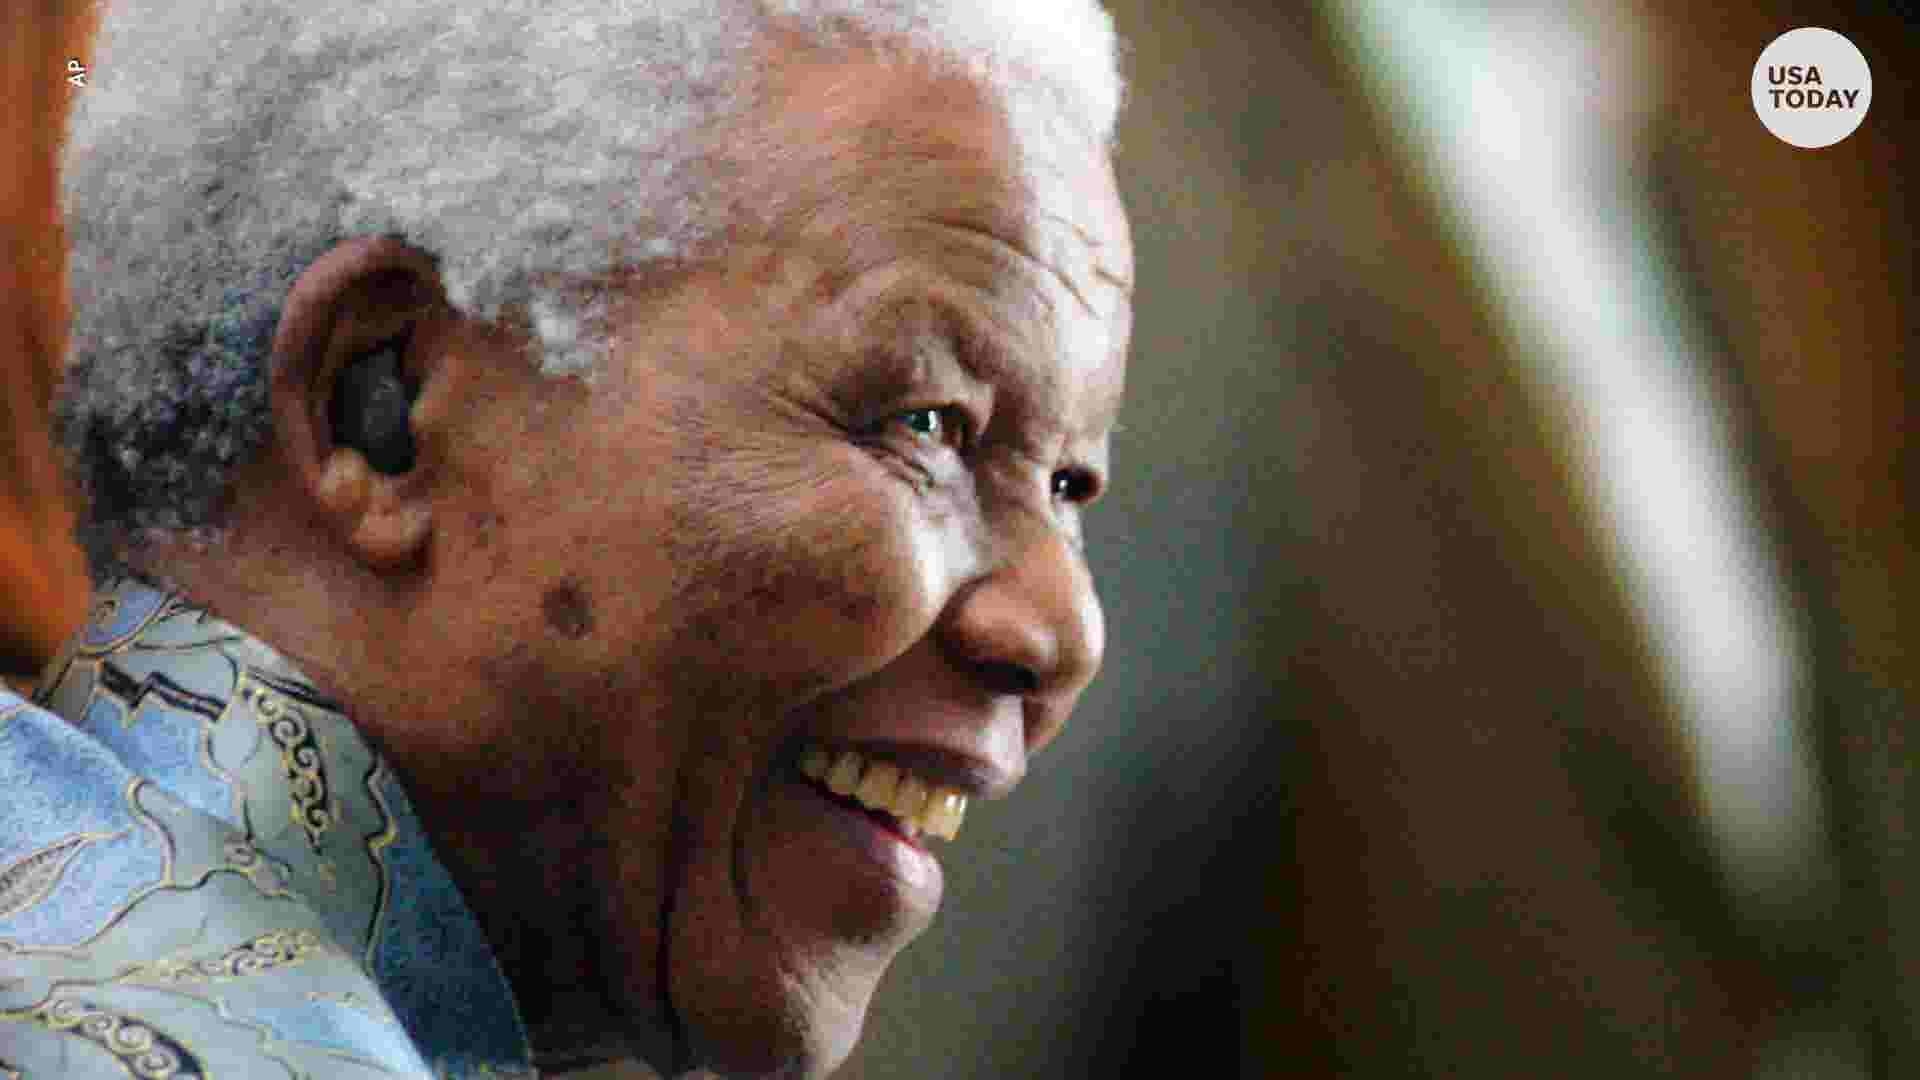 close the late anti apartheid revolutionary and former south african president